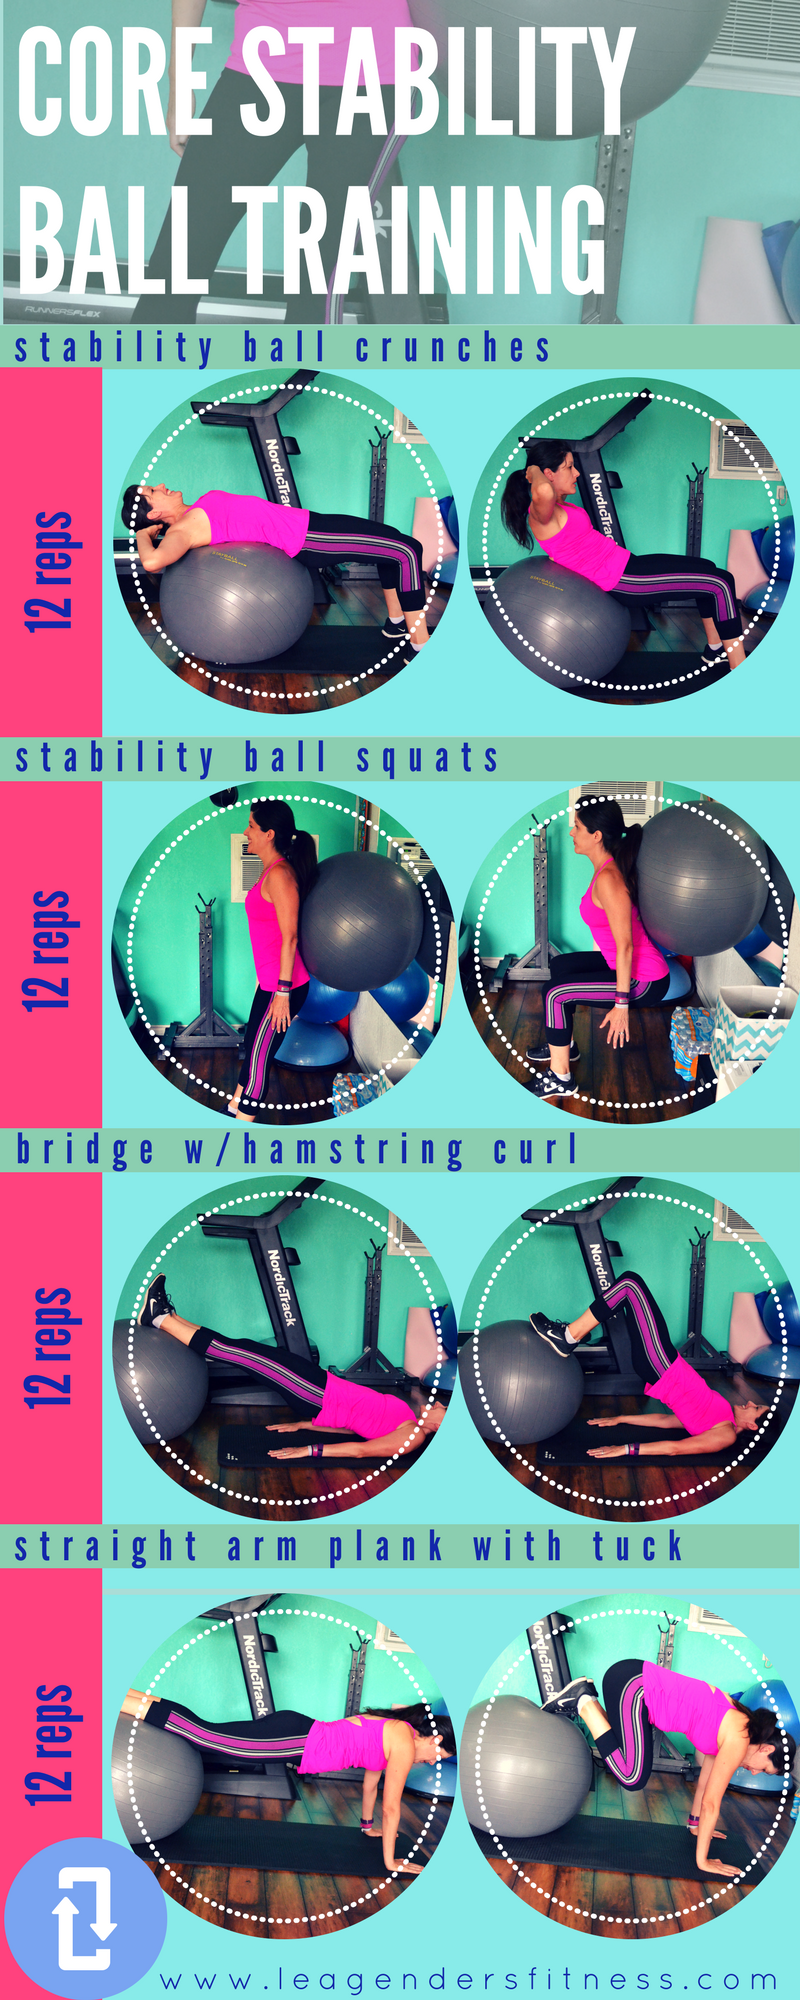 Core Stability Ball Training. Save to Pinterest for later. Download a printable PDF of this workout.